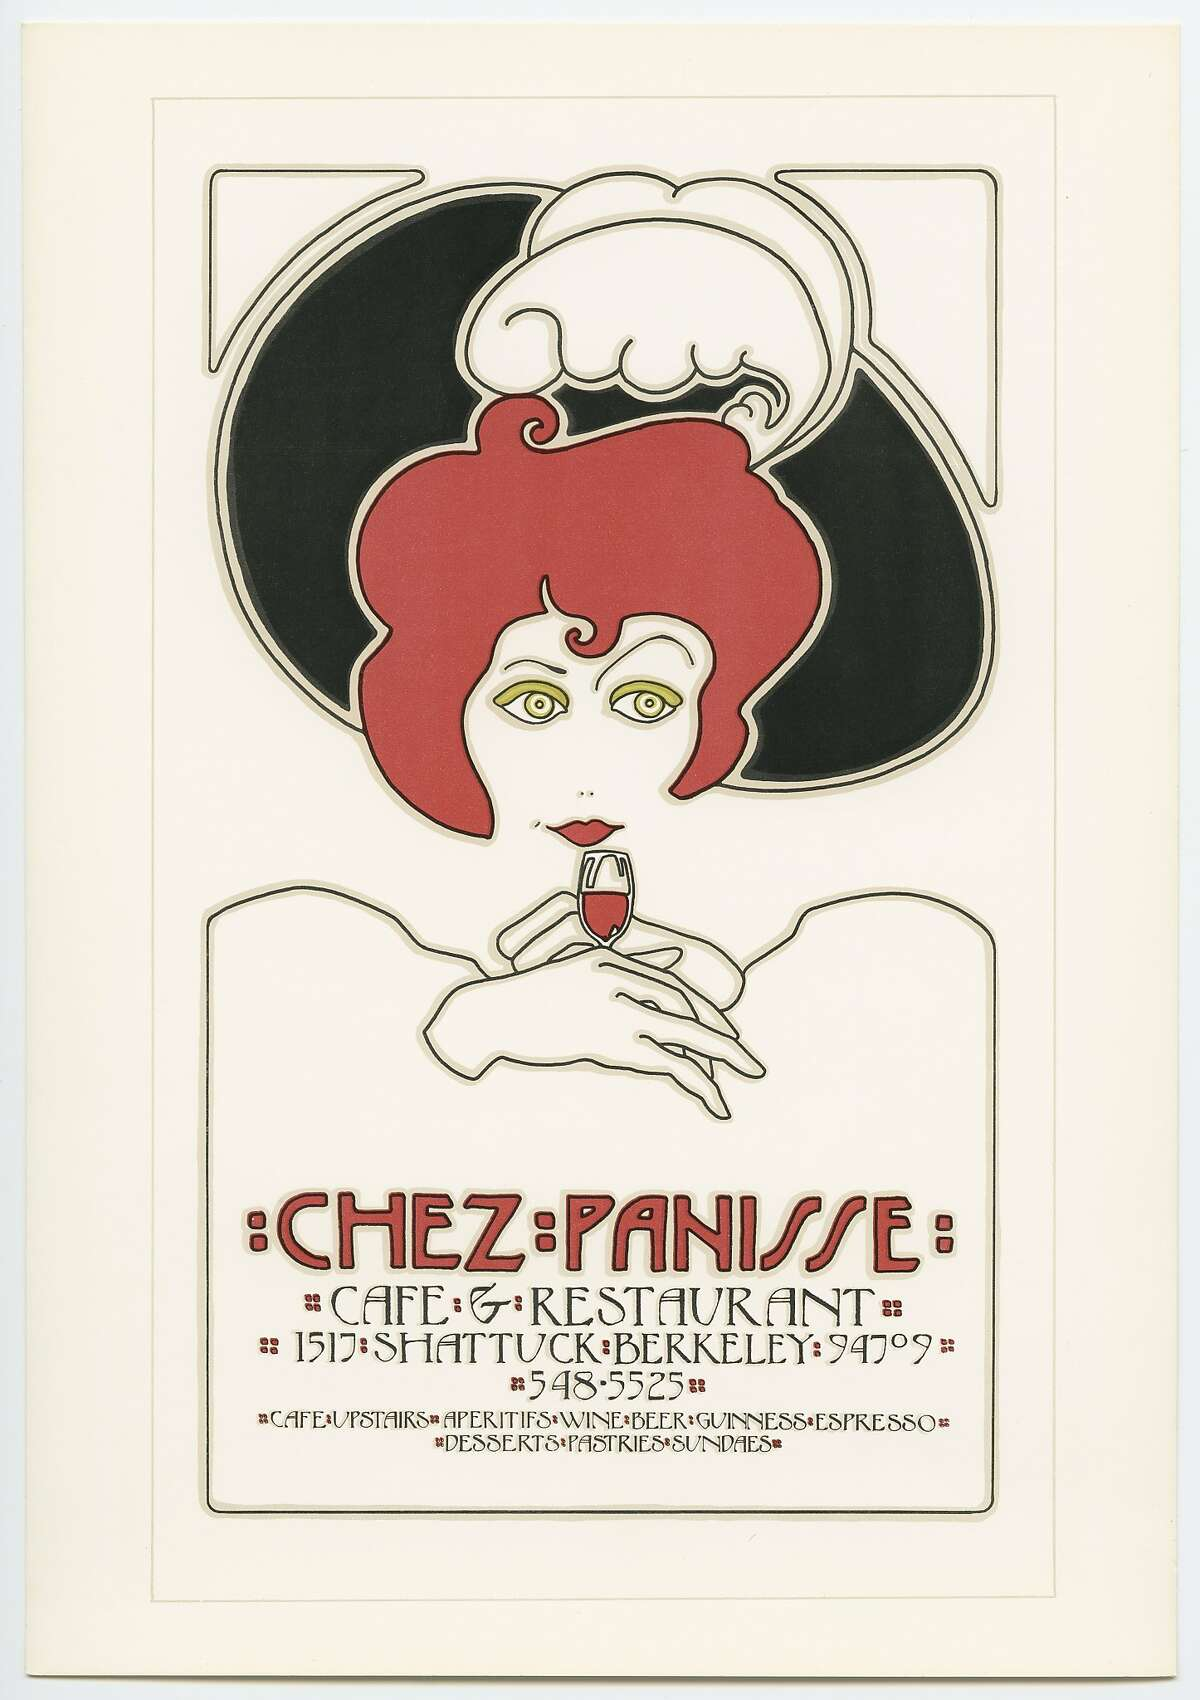 The first of many Chez Panisse posters by artist David Goines. This illustration was on the cover of the restaurant's matchboxes for 15 years, until the restaurant became nonsmoking. It is a drawing of Martine Labro, an artist who designed the first poster for Chez Panisse. Labro's poster was hung out front of the restaurant on the day it opened, Aug. 26, 1971, but was stolen that same night.